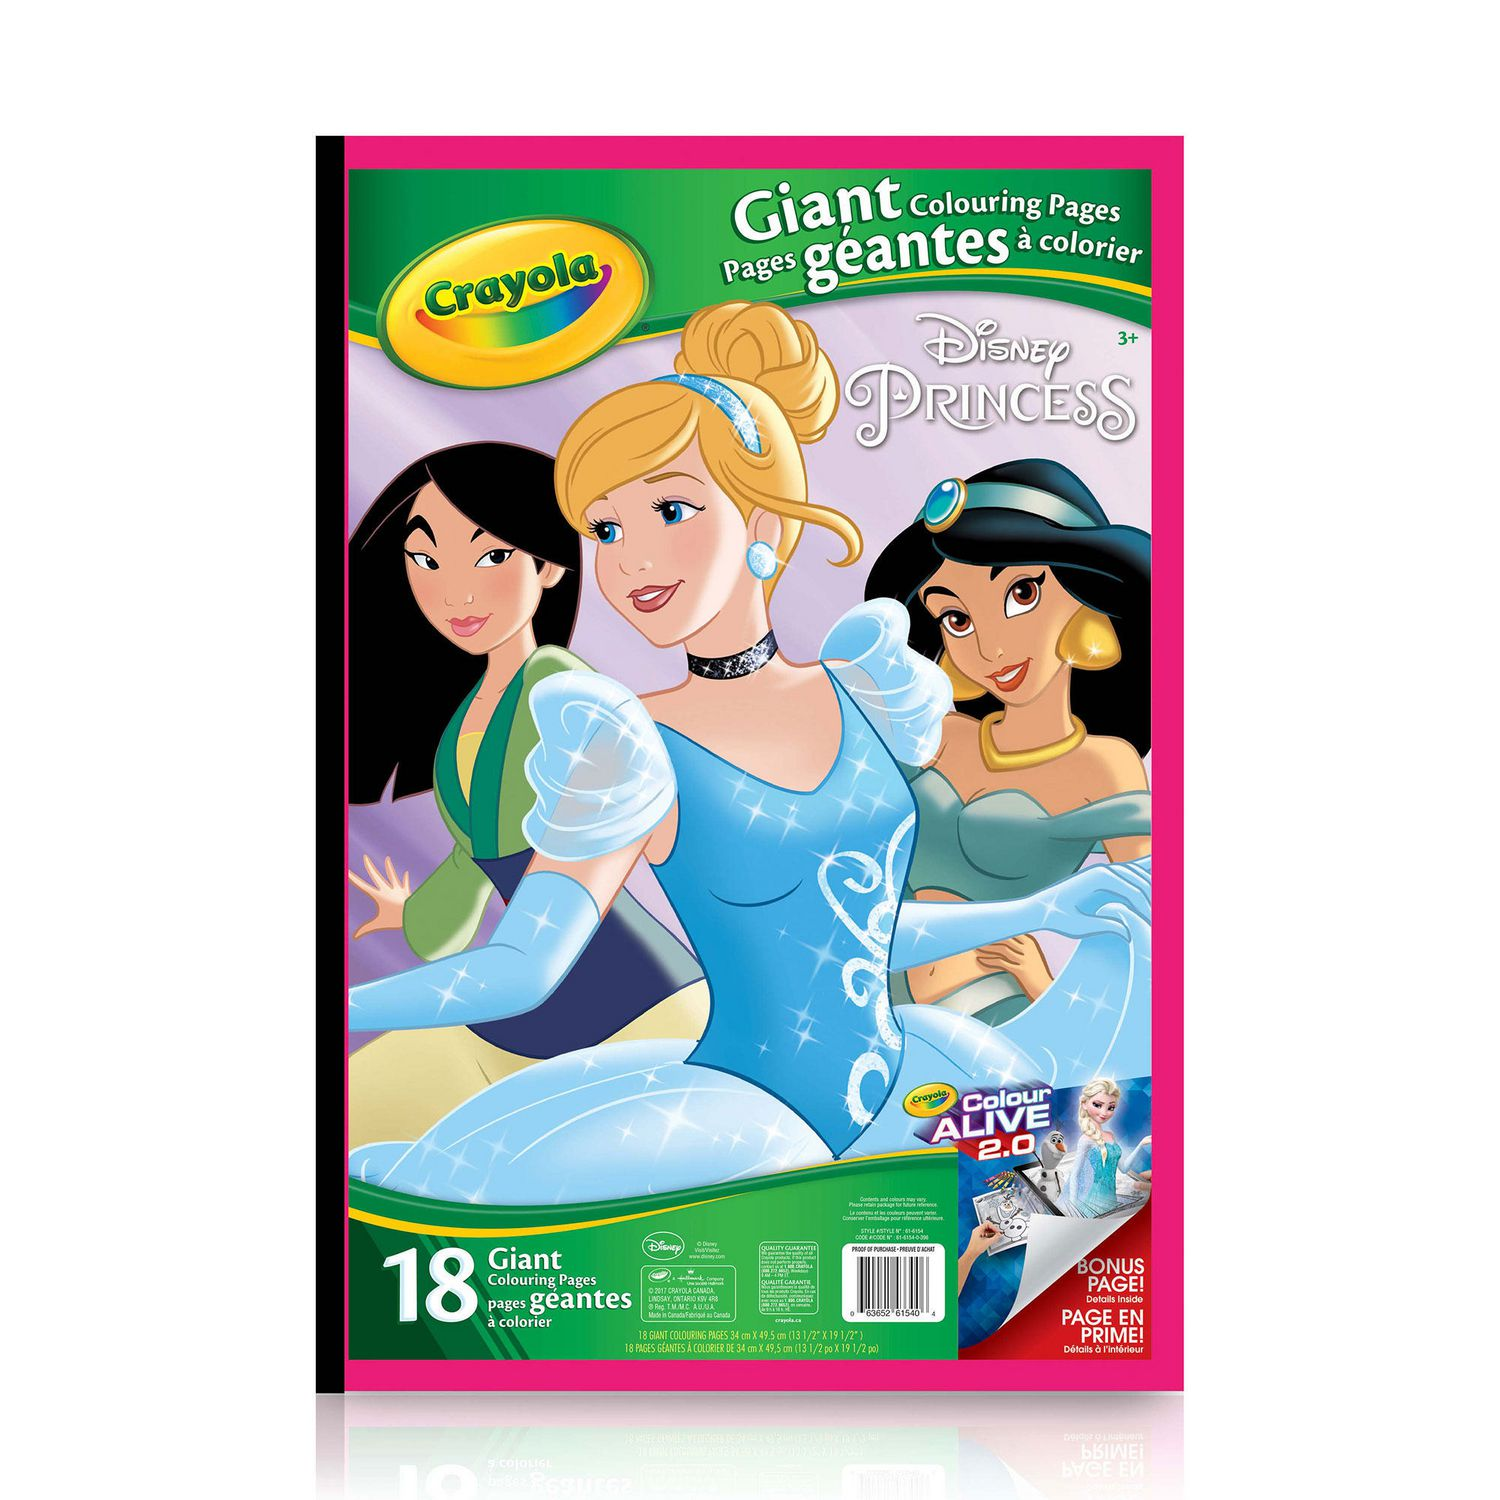 Giant Colouring Pages, Princess | Walmart Canada